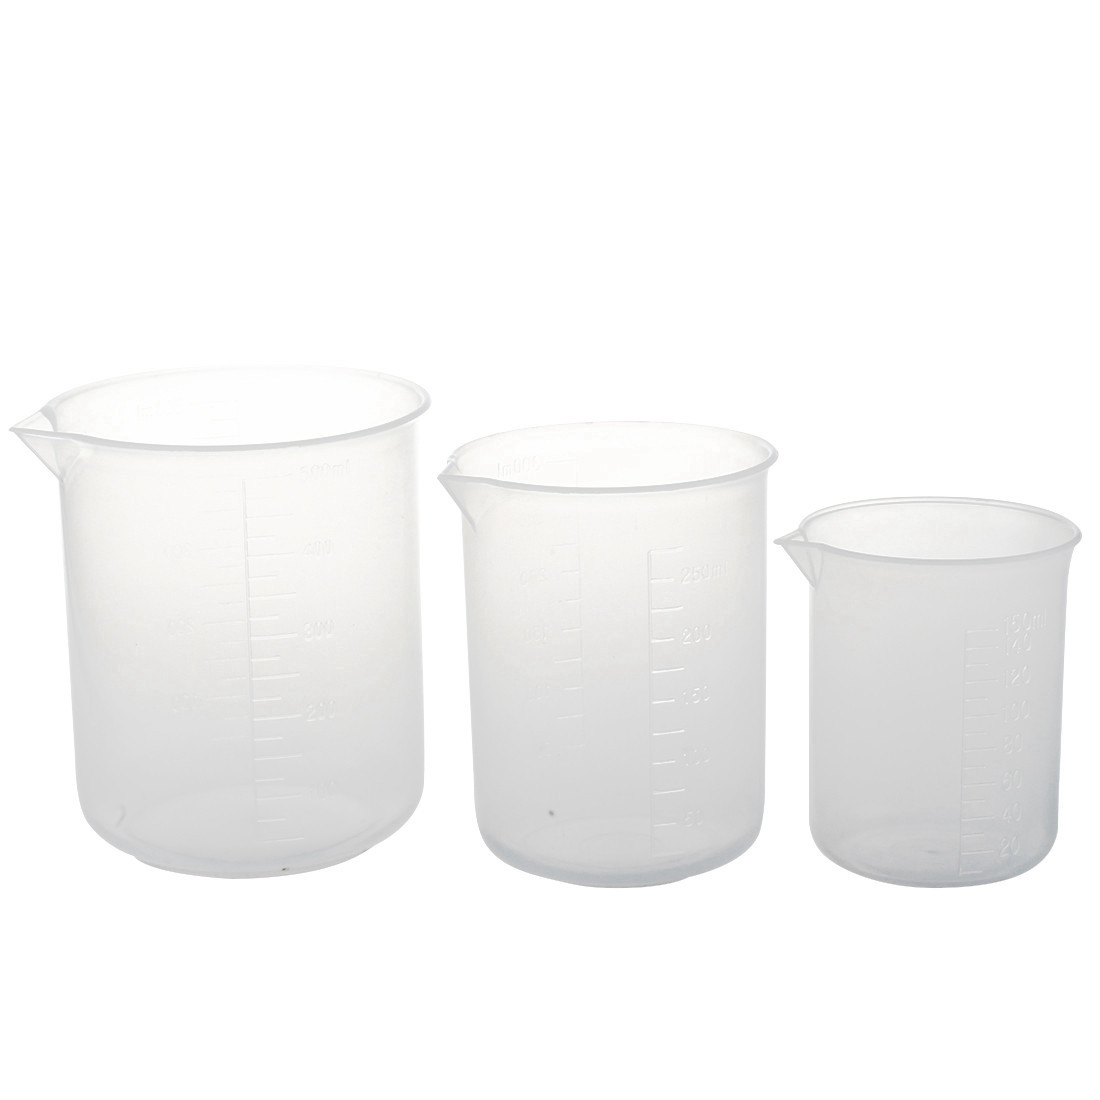 150 250 500 Ml Beaker Of Clear Plastic 3 Pcs. Measuring Cup Tool